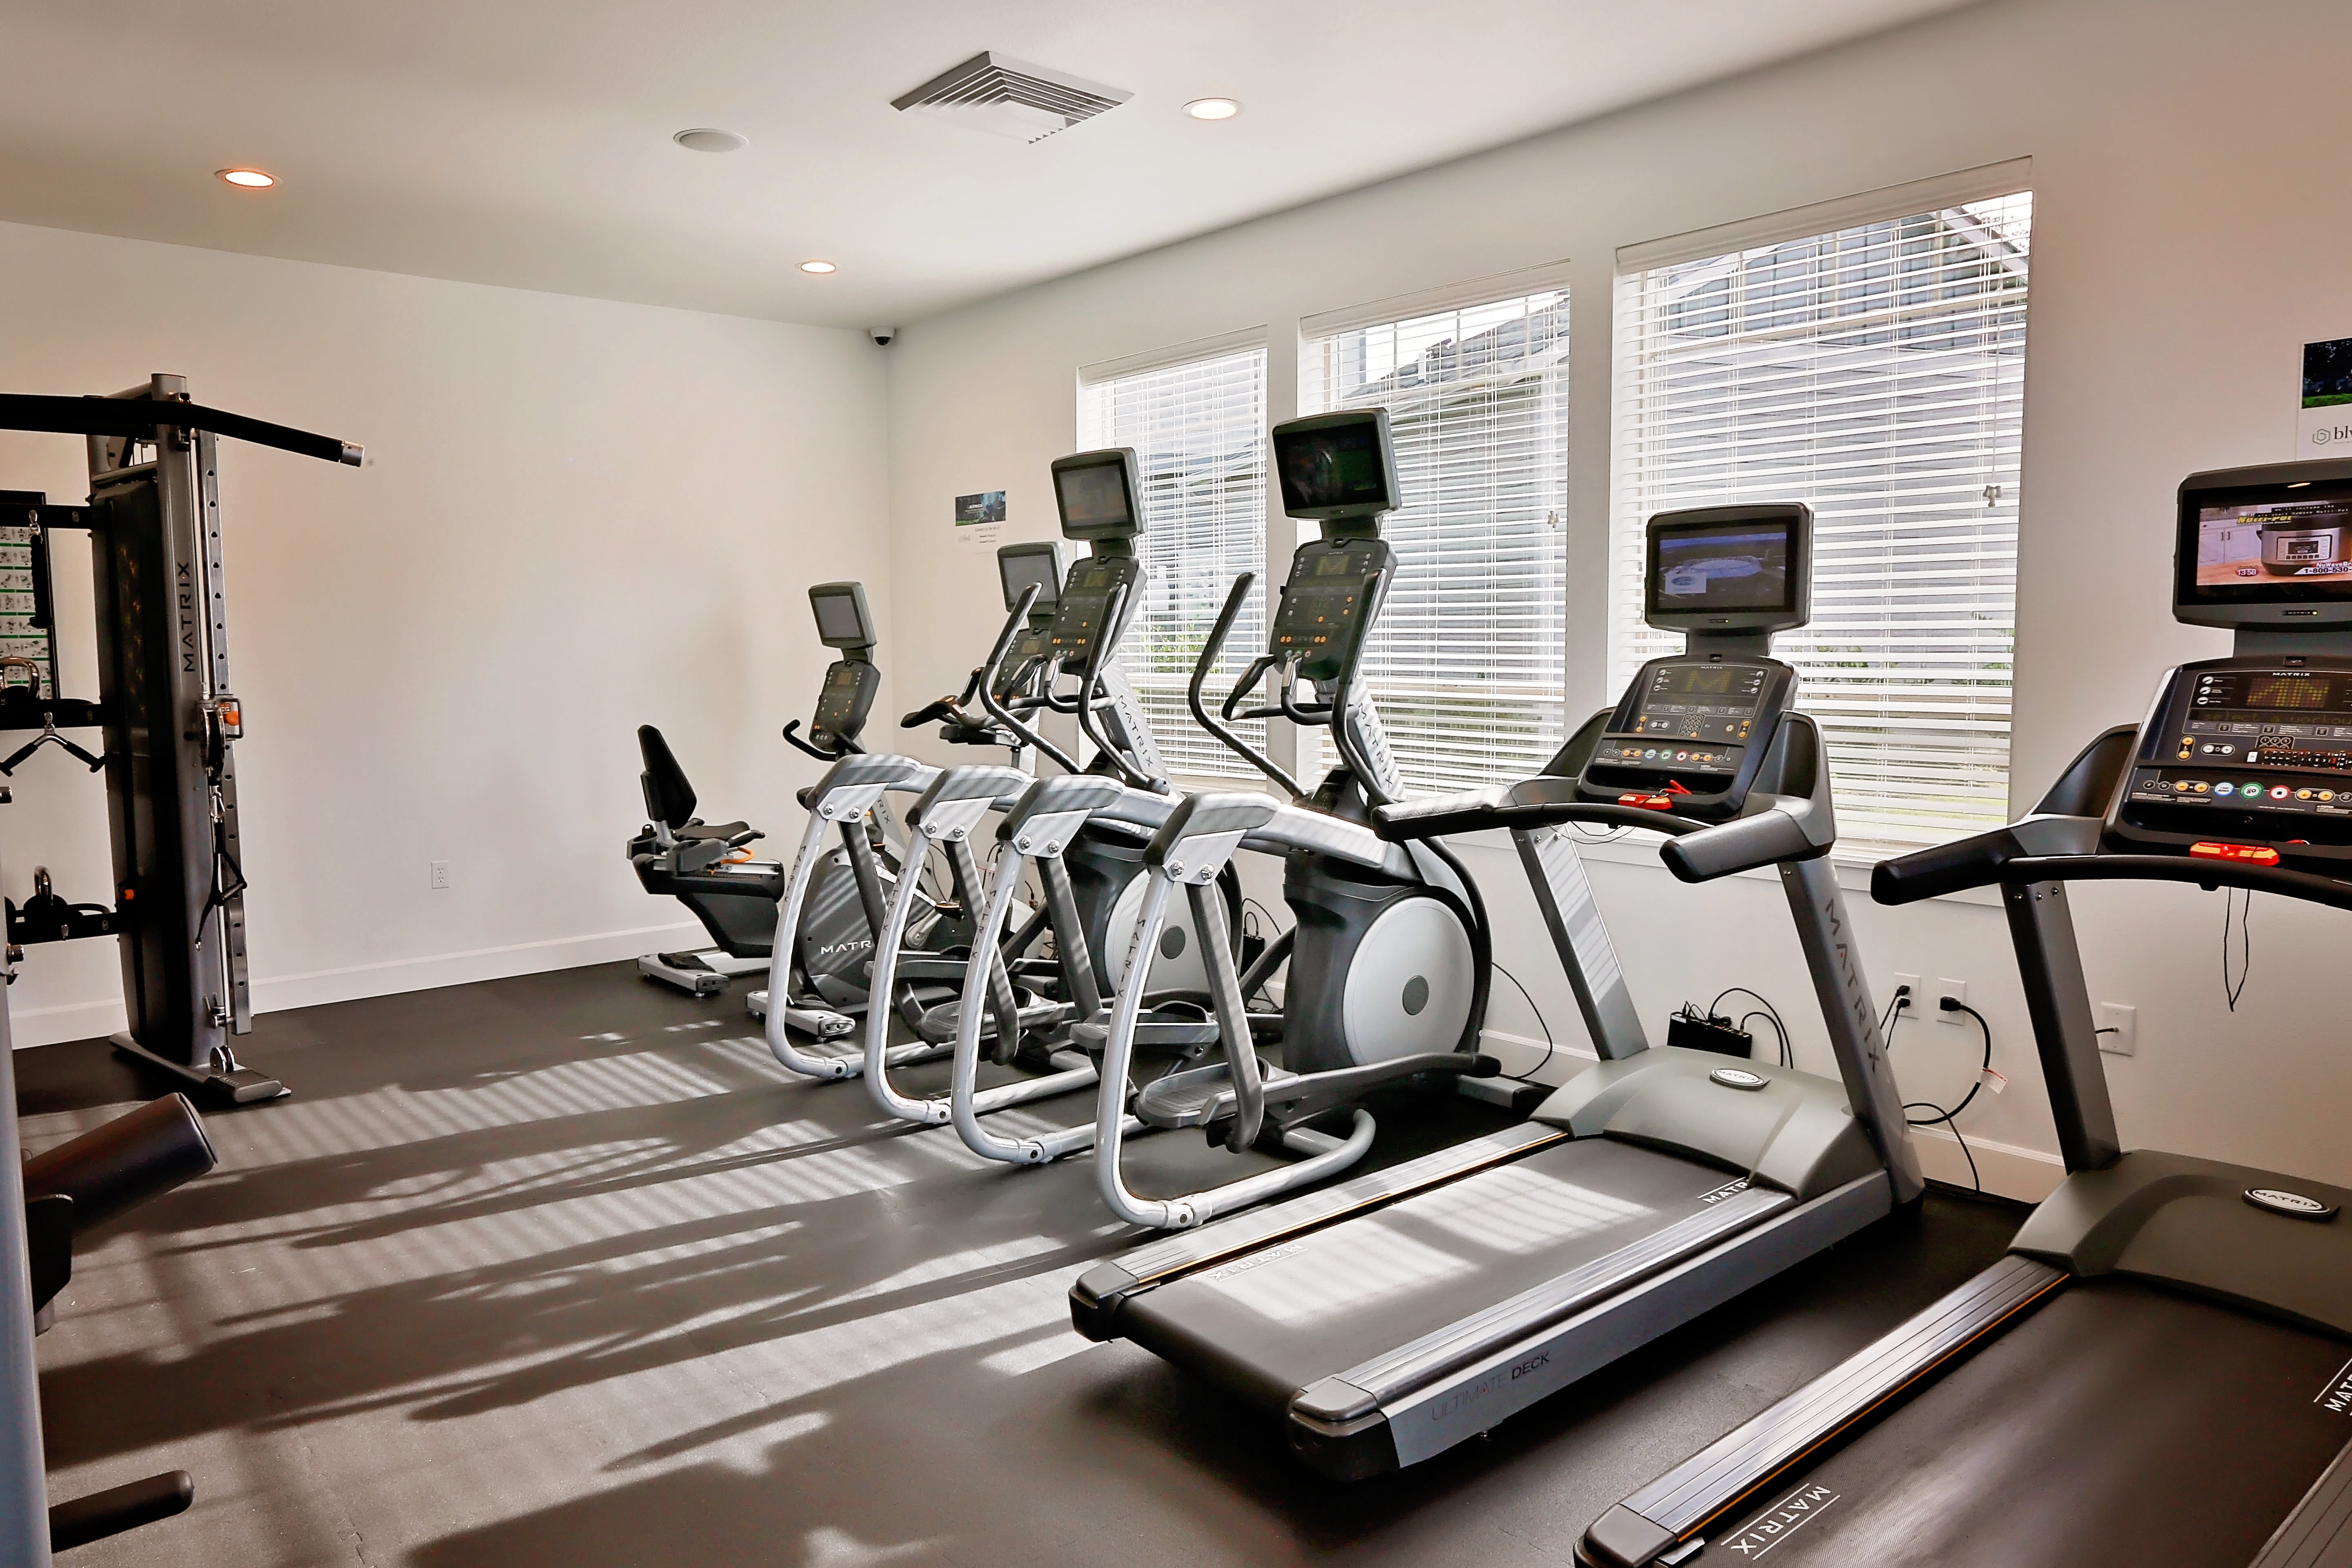 Our Apartments in Philomath, Oregon offer a Fitness Center